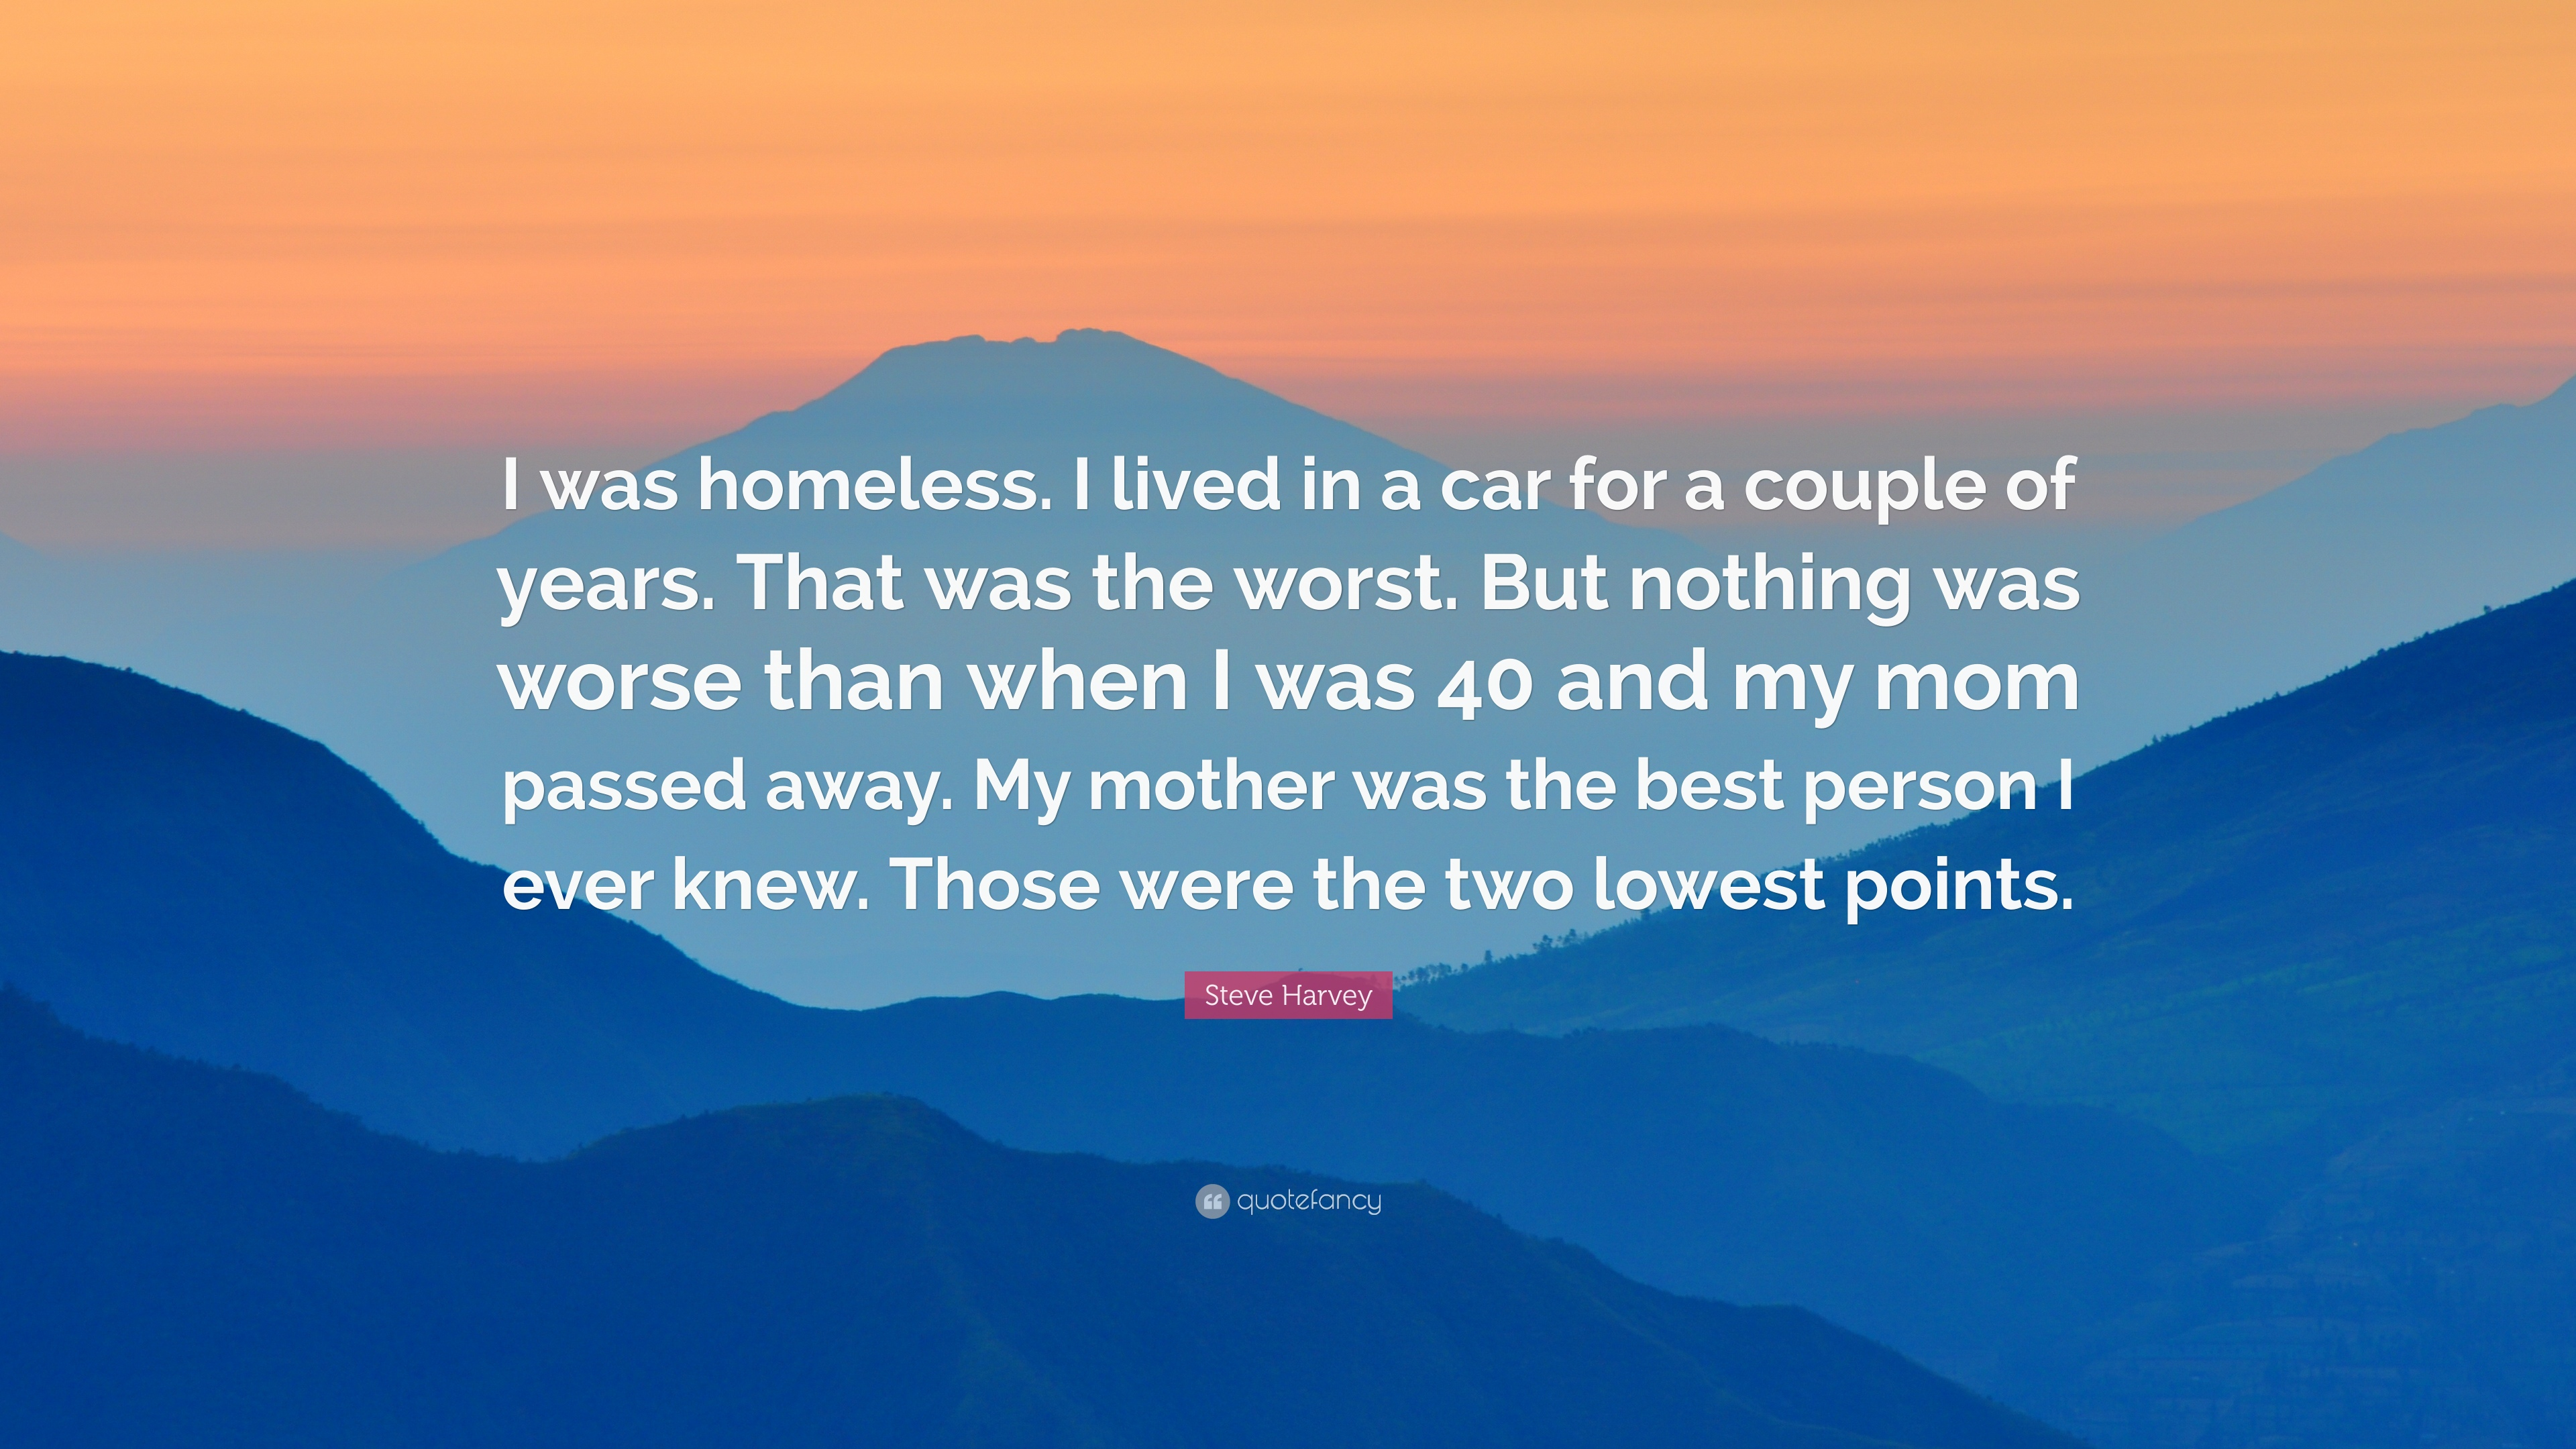 """Quotes About Homelessness Steve Harvey Quote """"I Was Homelessi Lived In A Car For A Couple"""